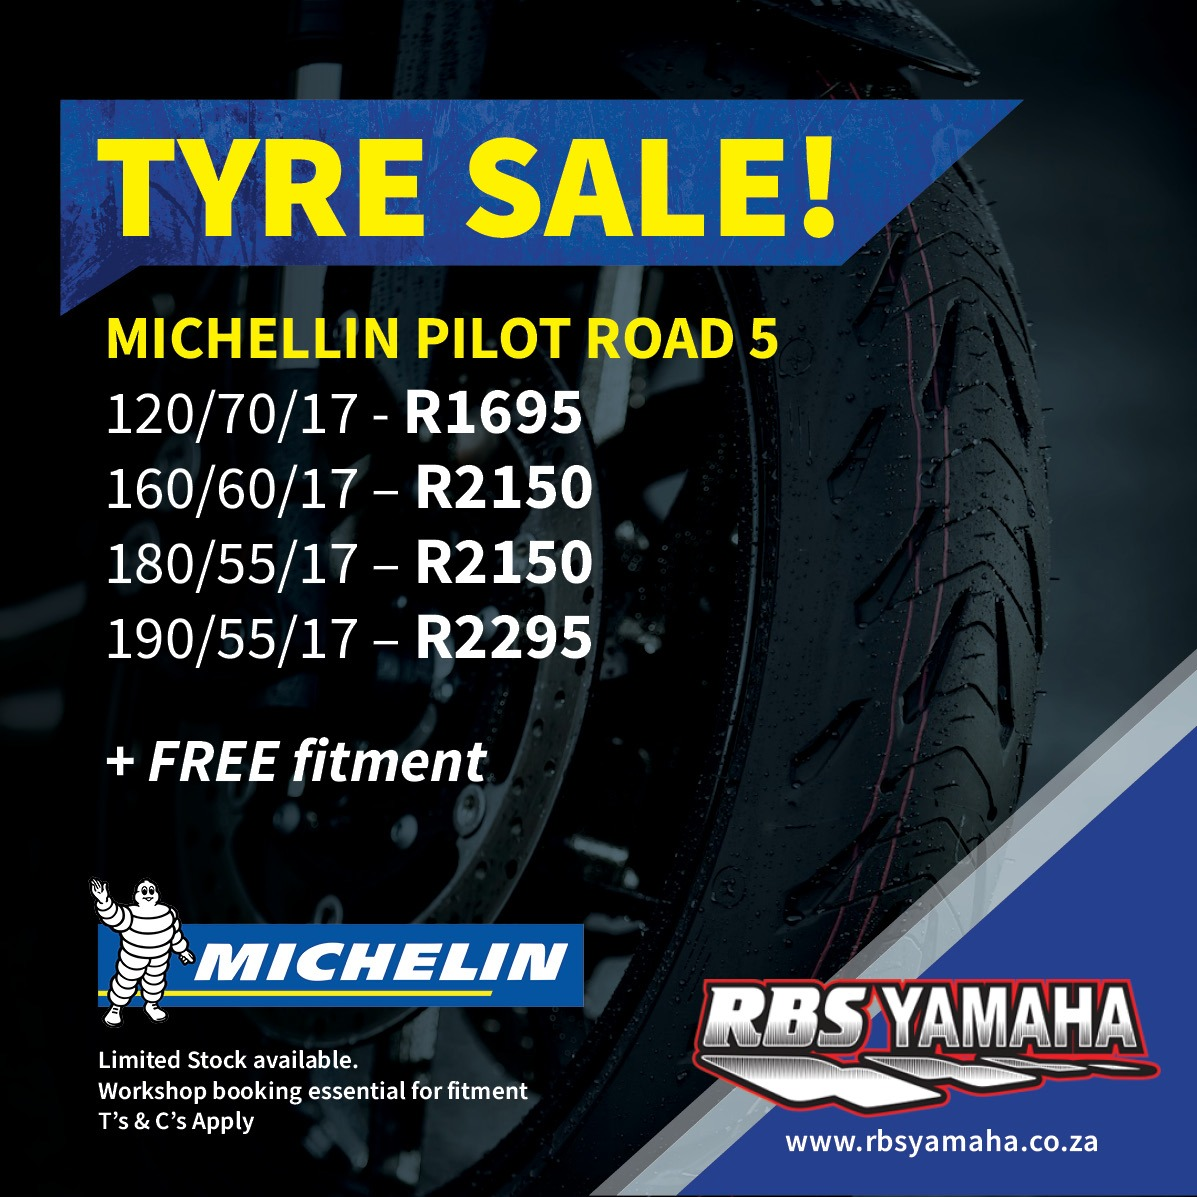 Michelin Motorcycle tyre special